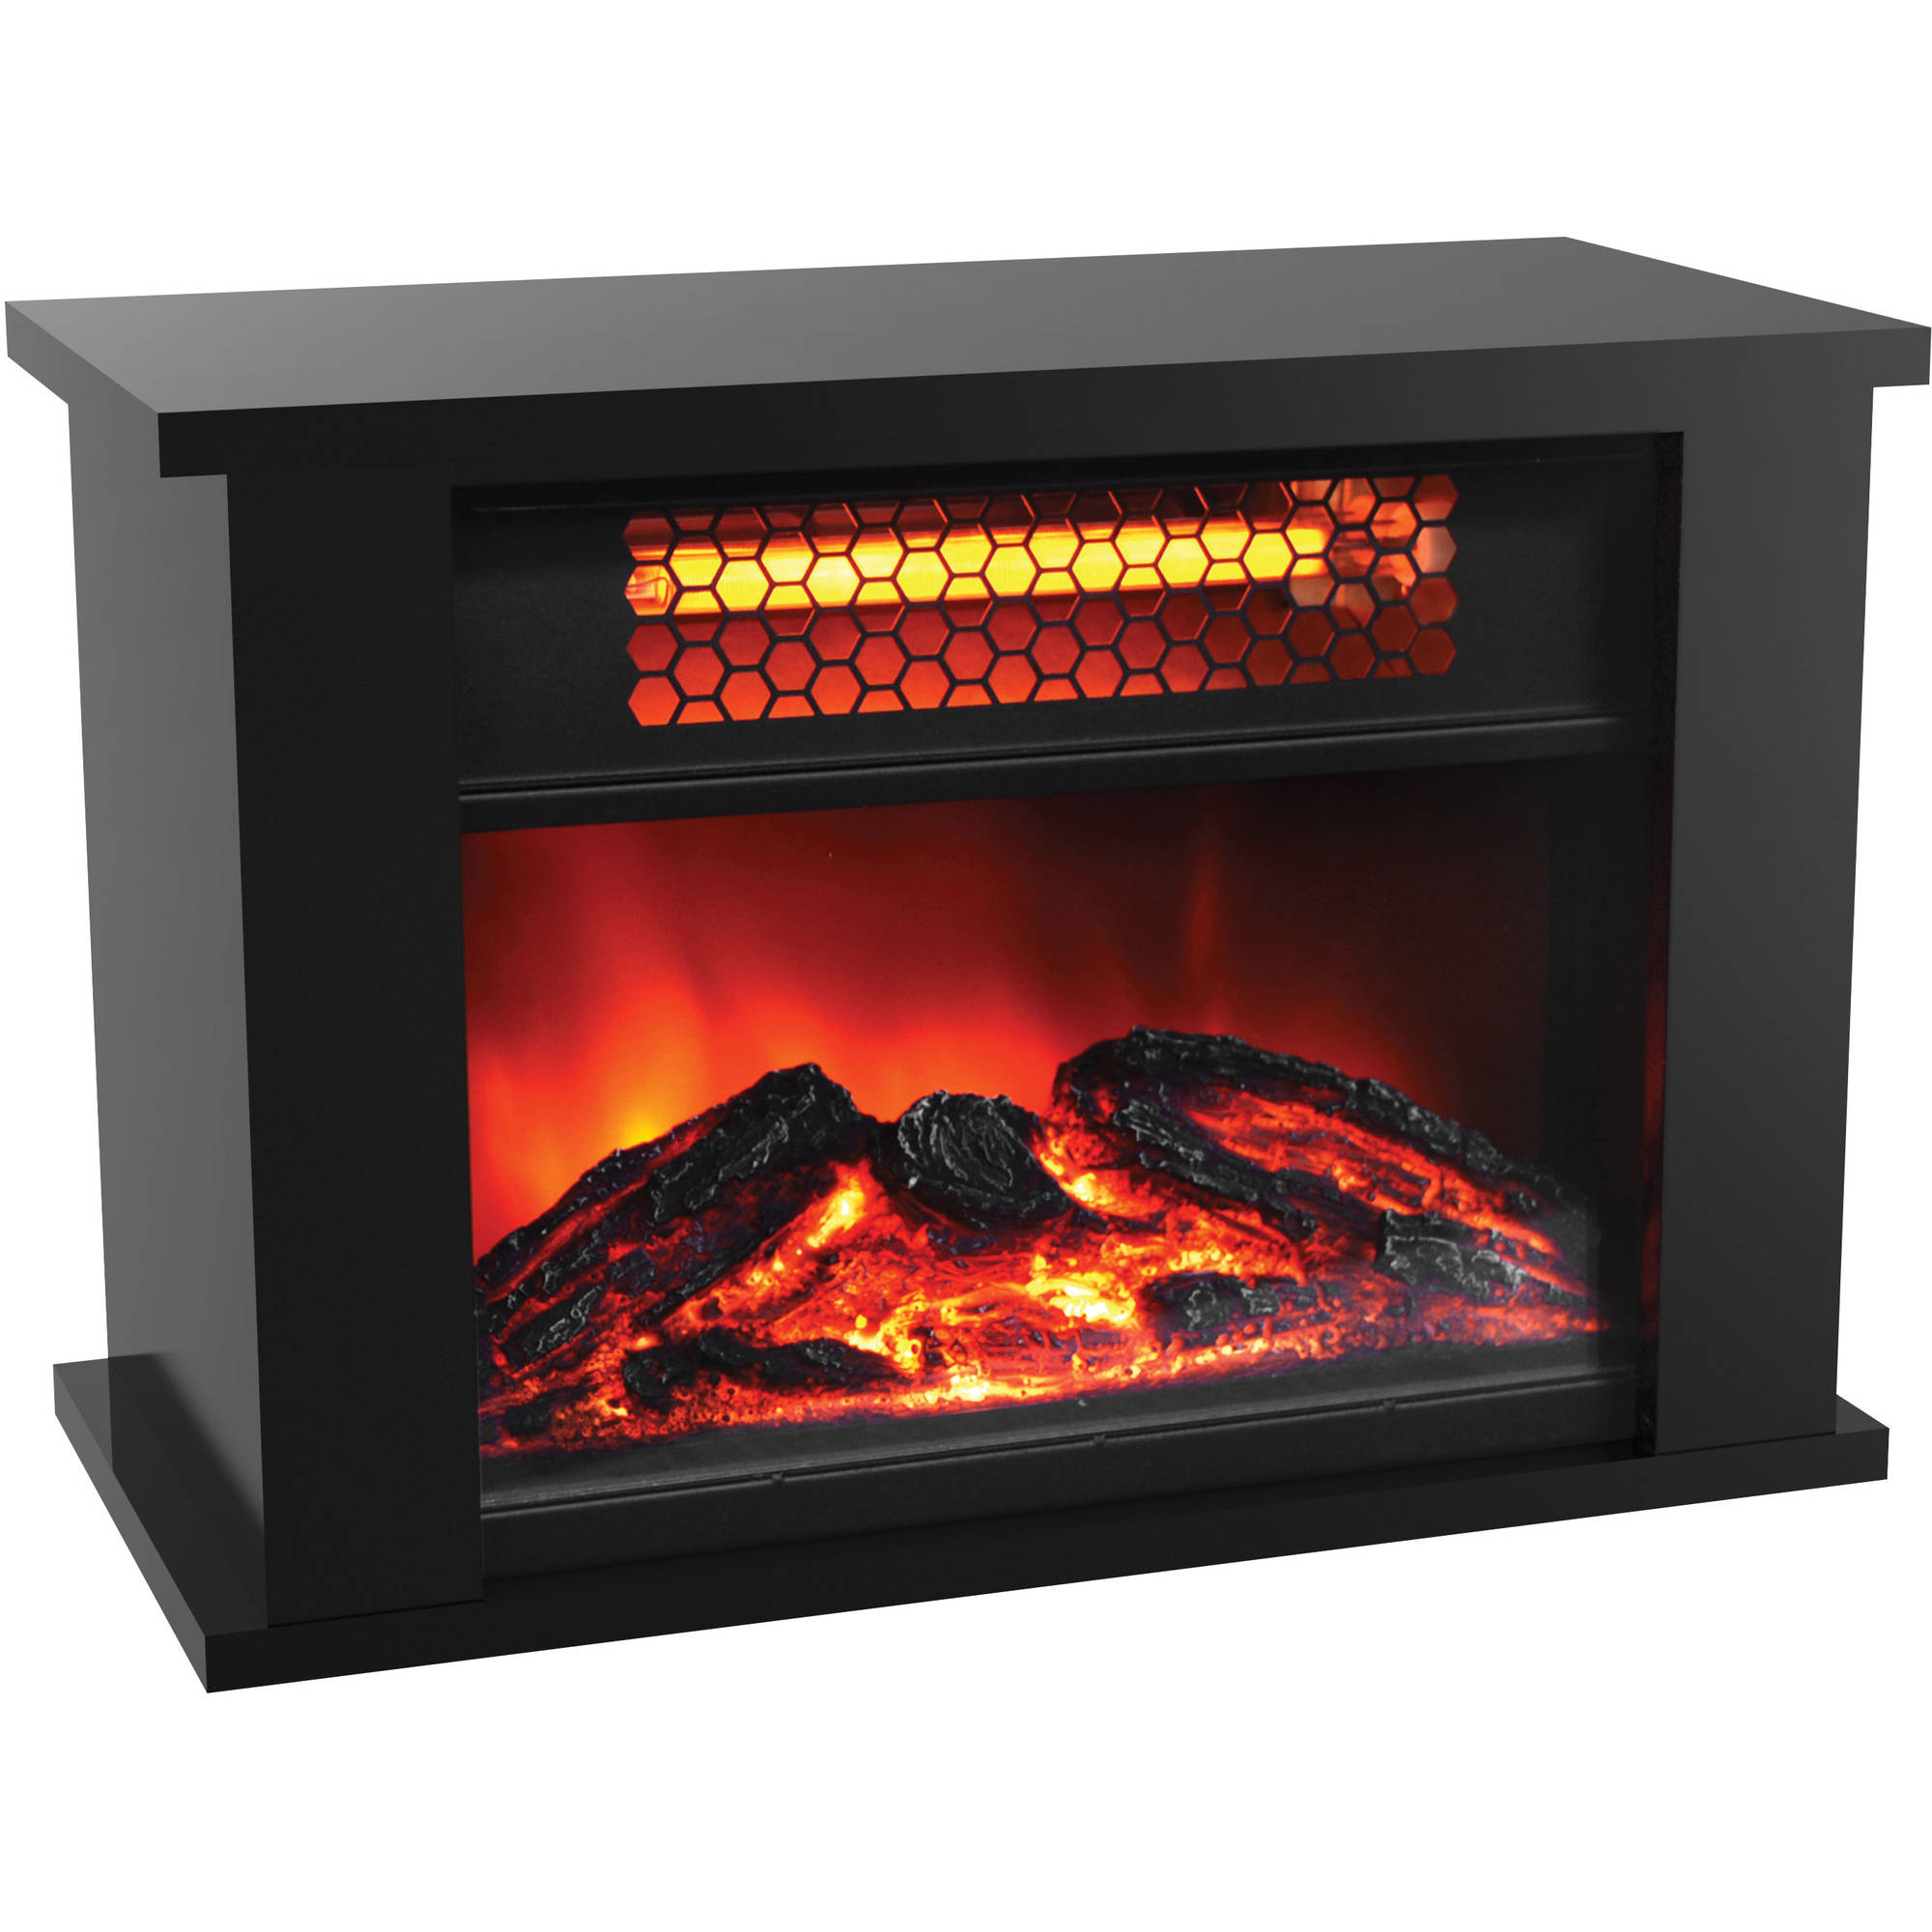 LifePro Mini Infrared Fireplace Heater, Black